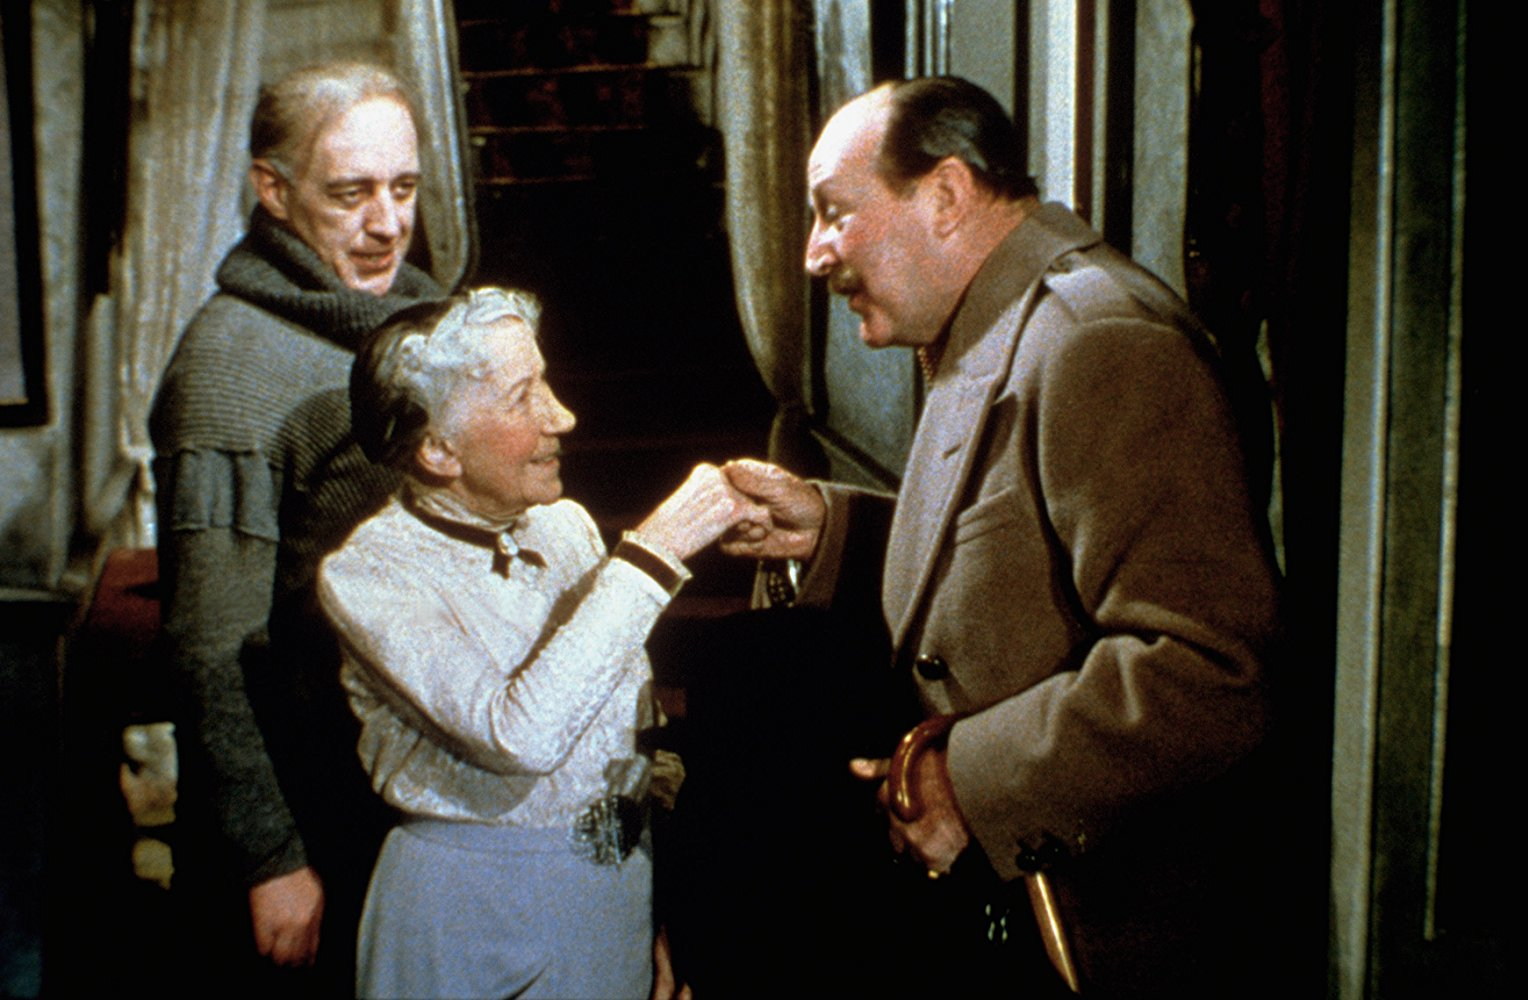 LadyKillers - everyone's Ealing Comedy classic now on 4K blu ray!